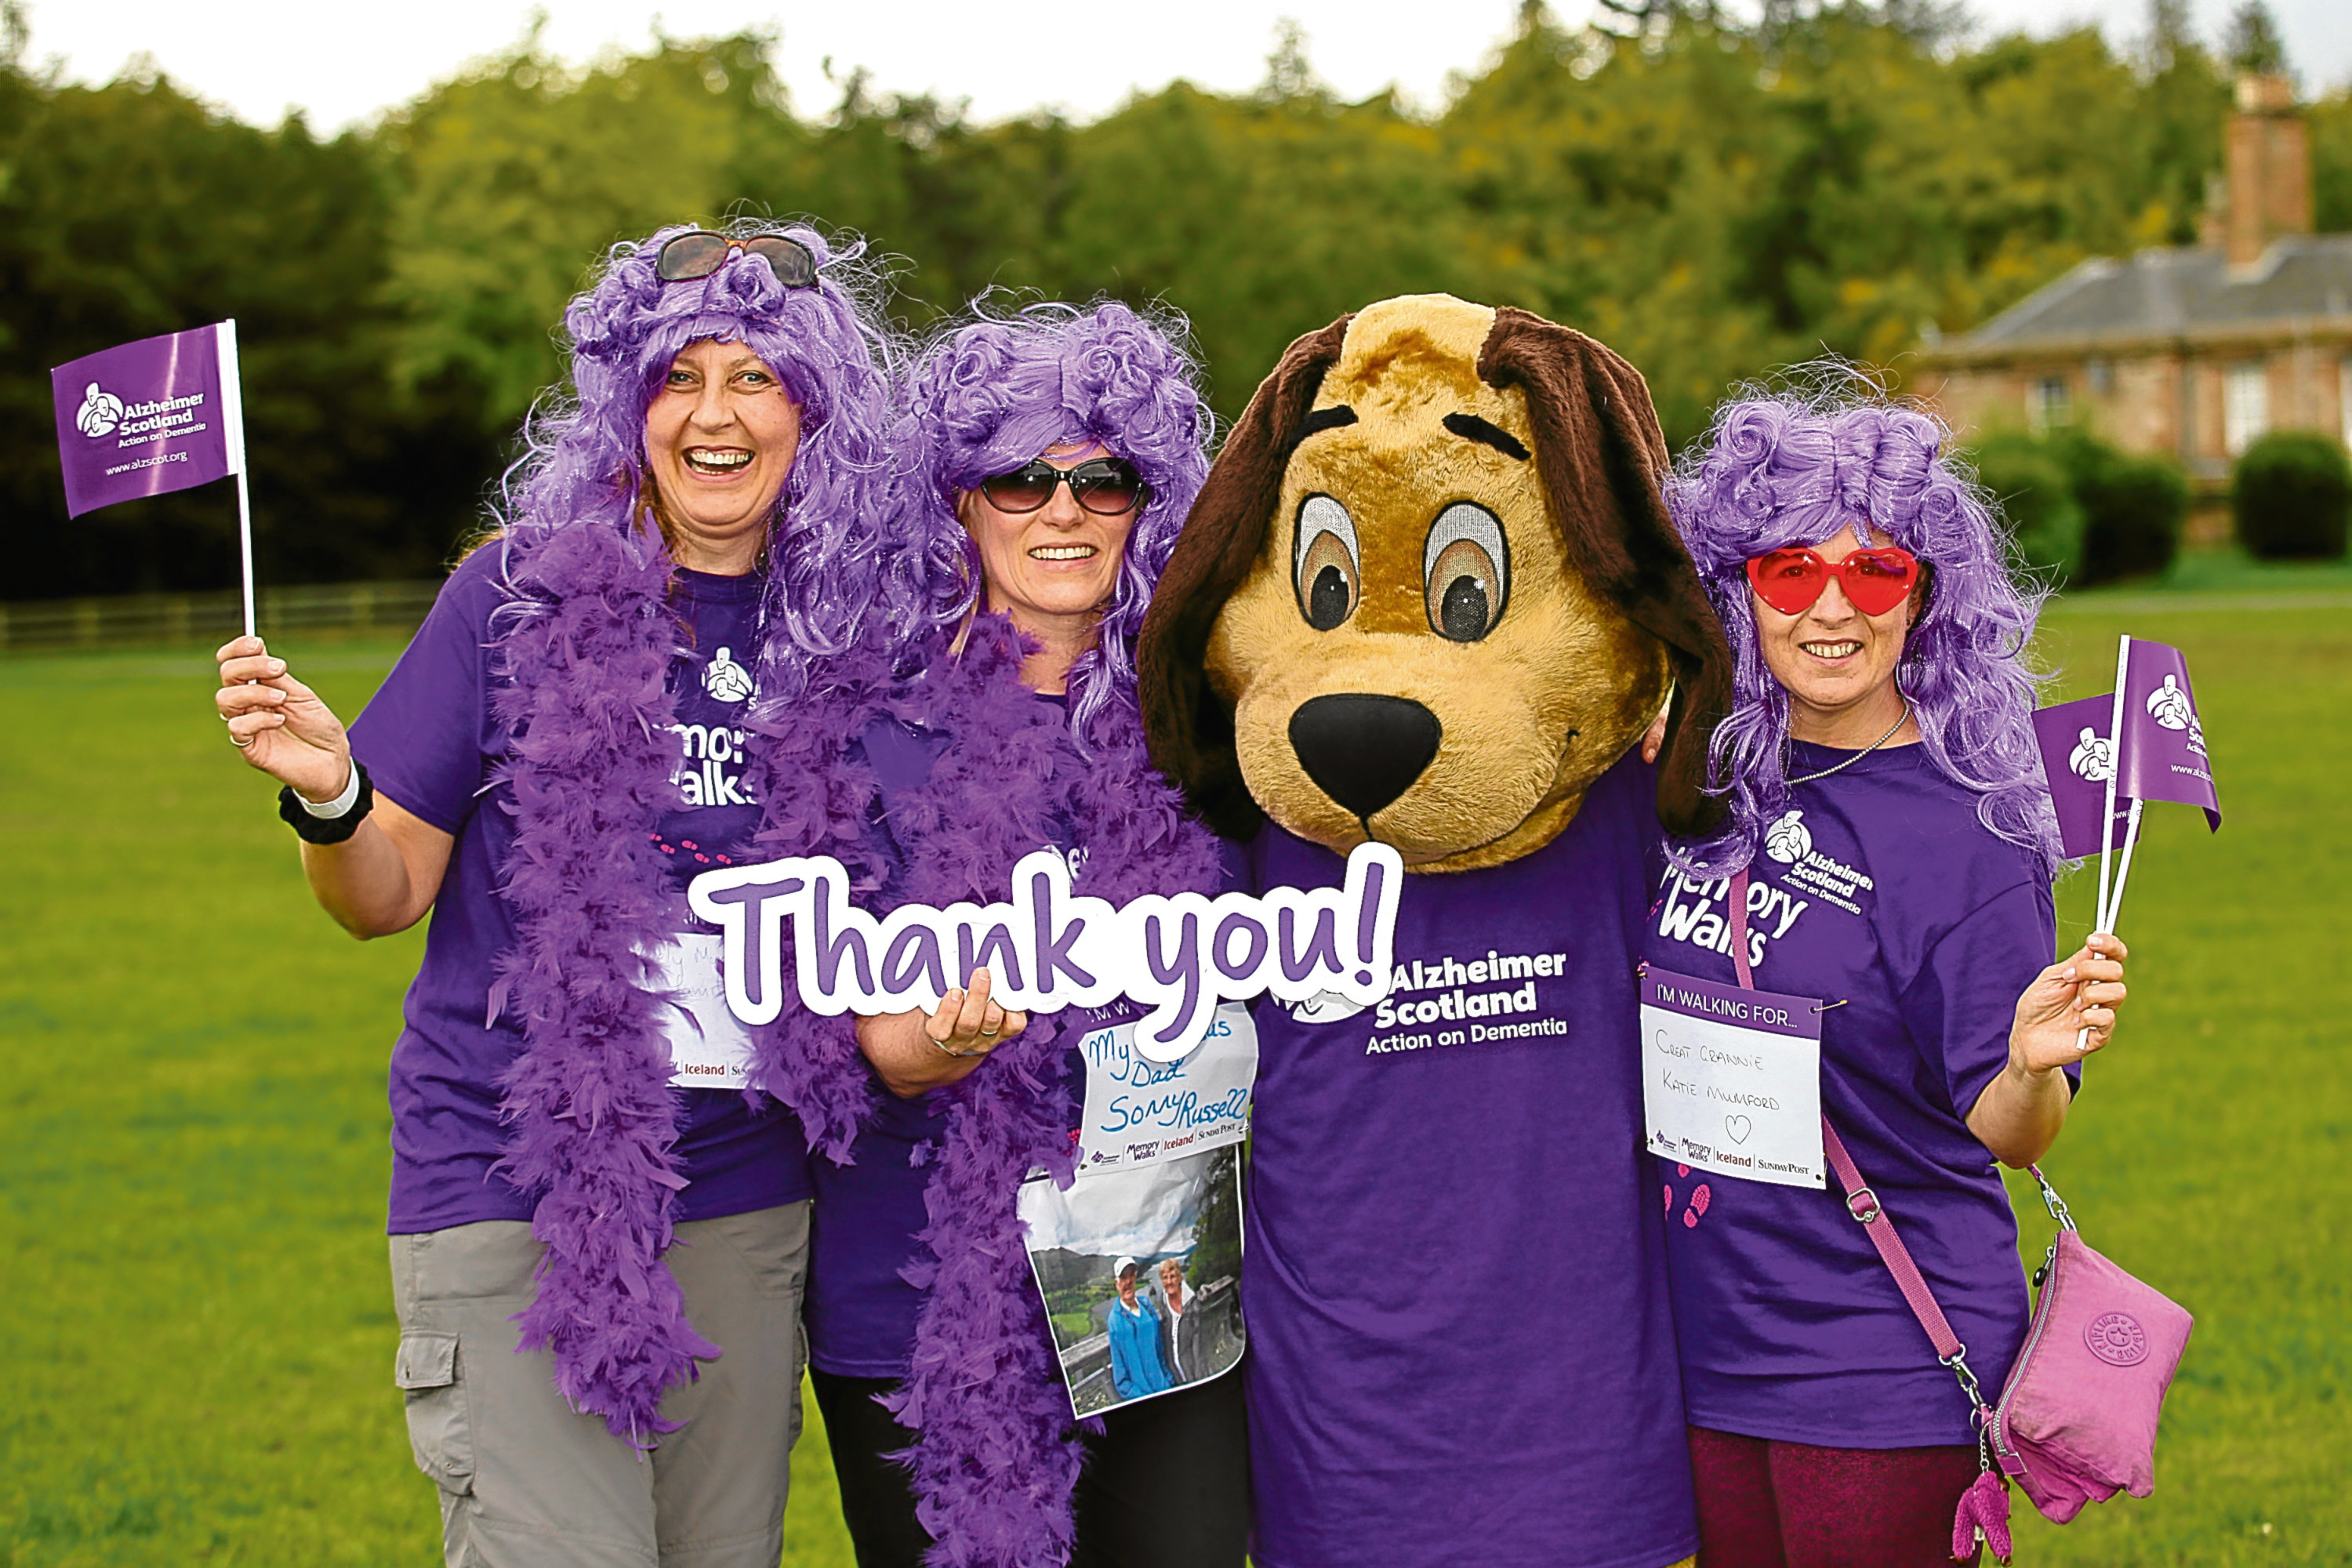 Alzheimers Scotland Memory Walk at Dalkeith Country Park 23/9/17. Marion Darling's group: l to r: Karen Low, Marion darling, Buddy the dog and Susanne McVicker